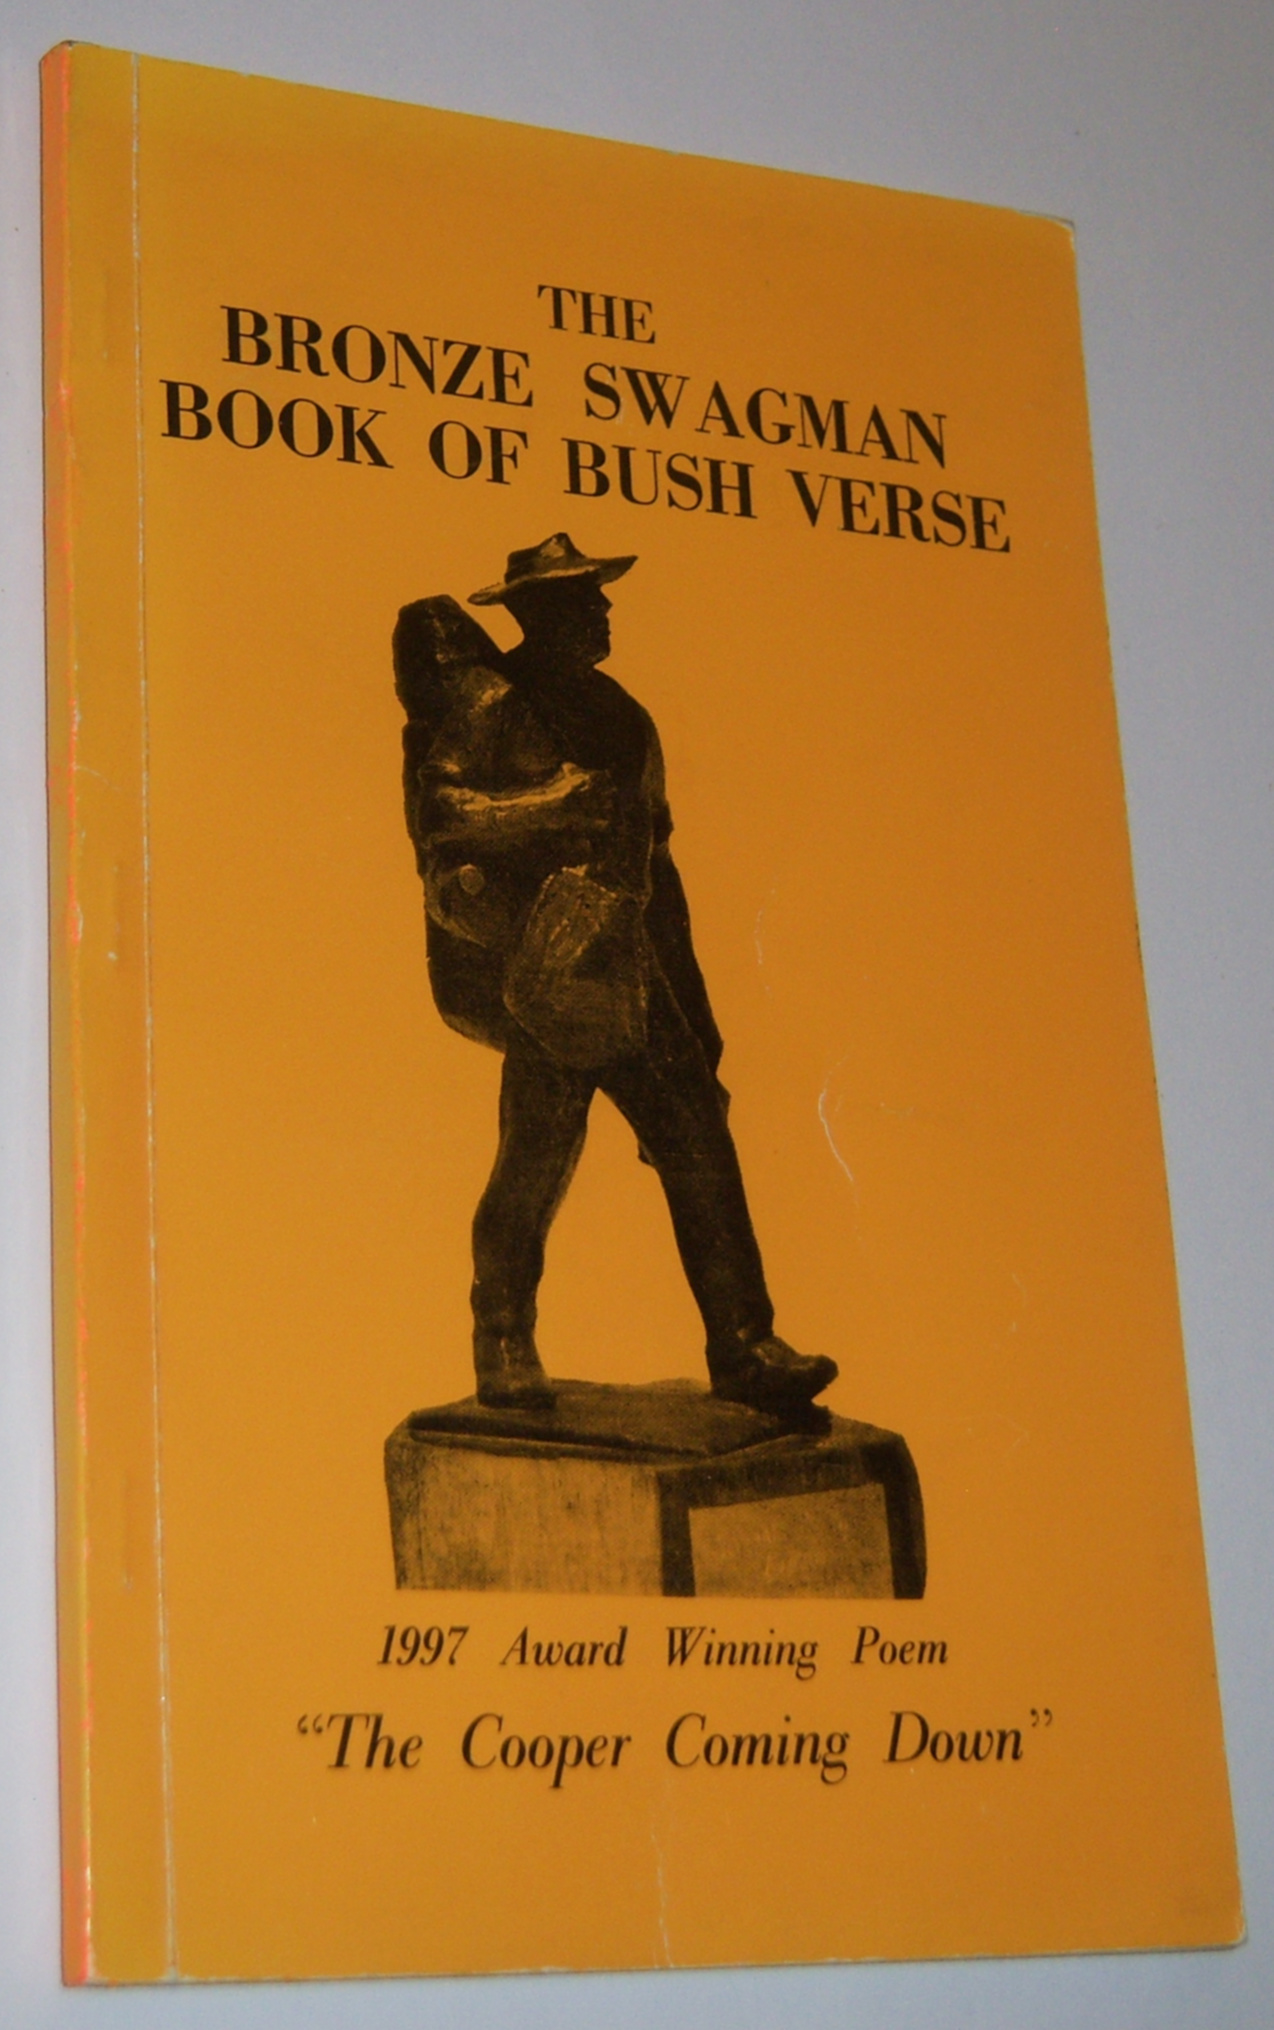 Image for THE BRONZE SWAGMAN BOOK OF BUSH VERSE (1997) Twenty-Sixth Edition